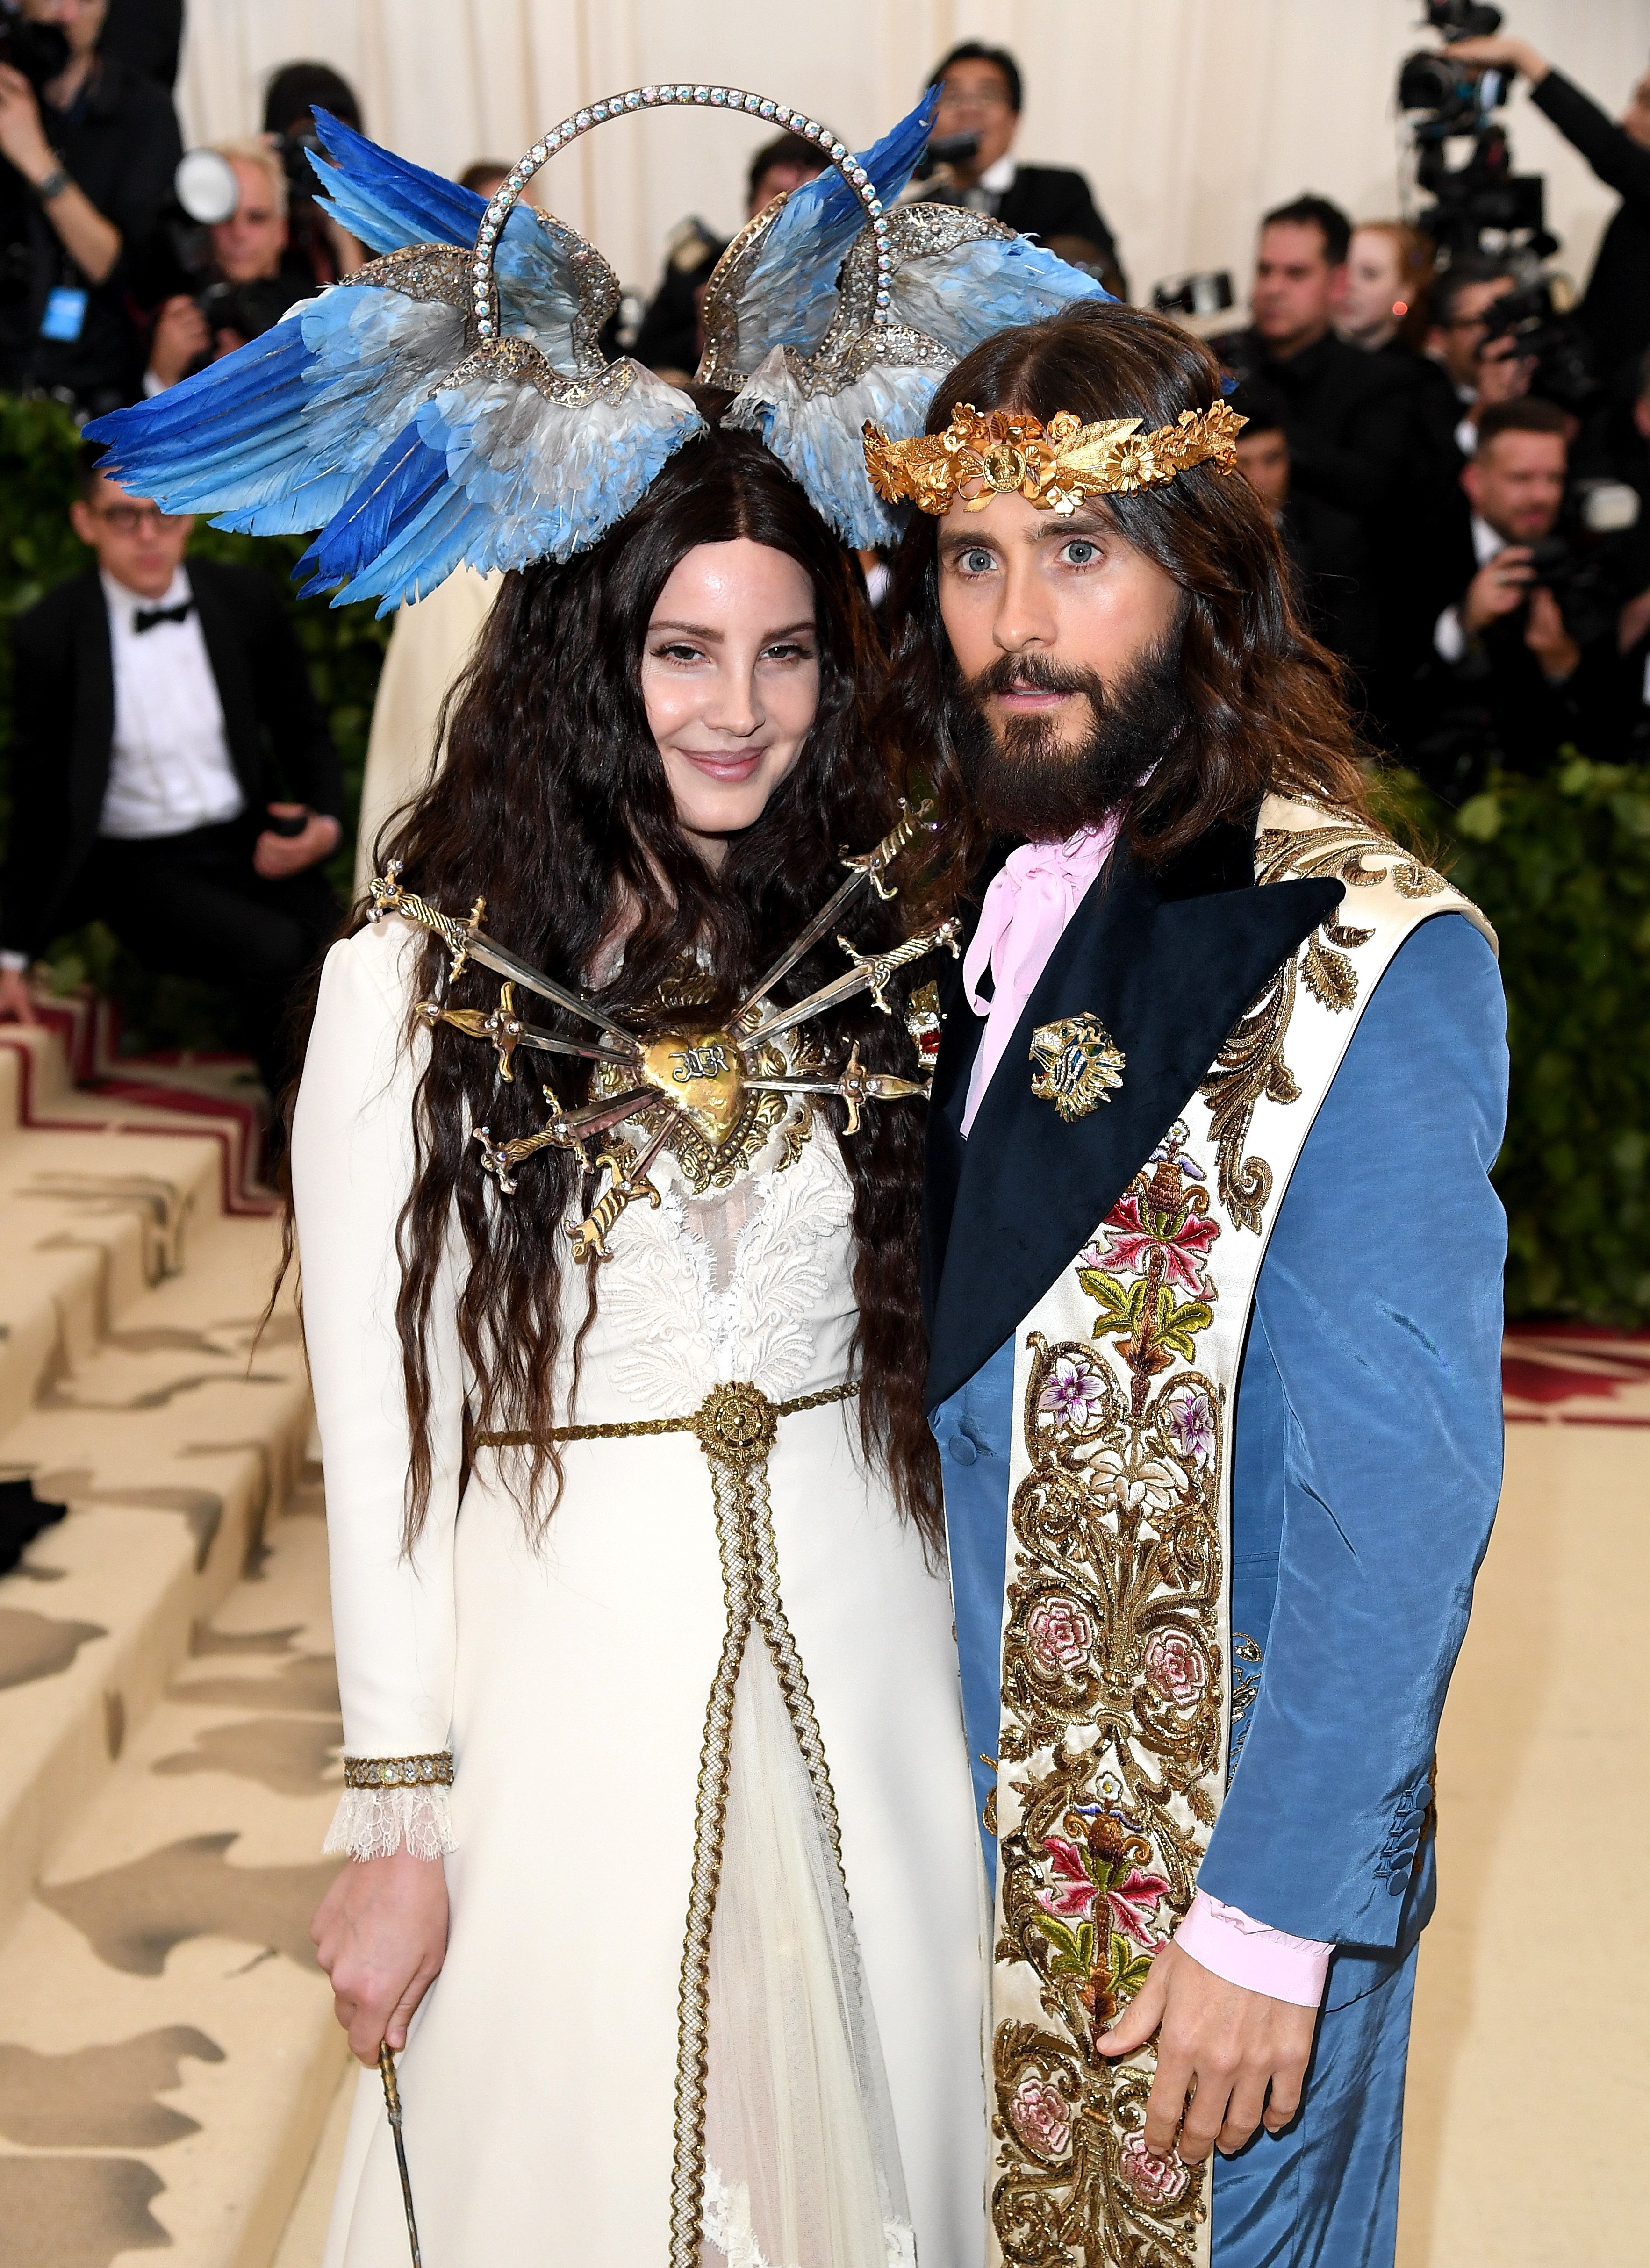 Lana Del Rey, here with Jared Leto, wore a cream-colored Gucci dress and a halo embellished with blue wings. But th